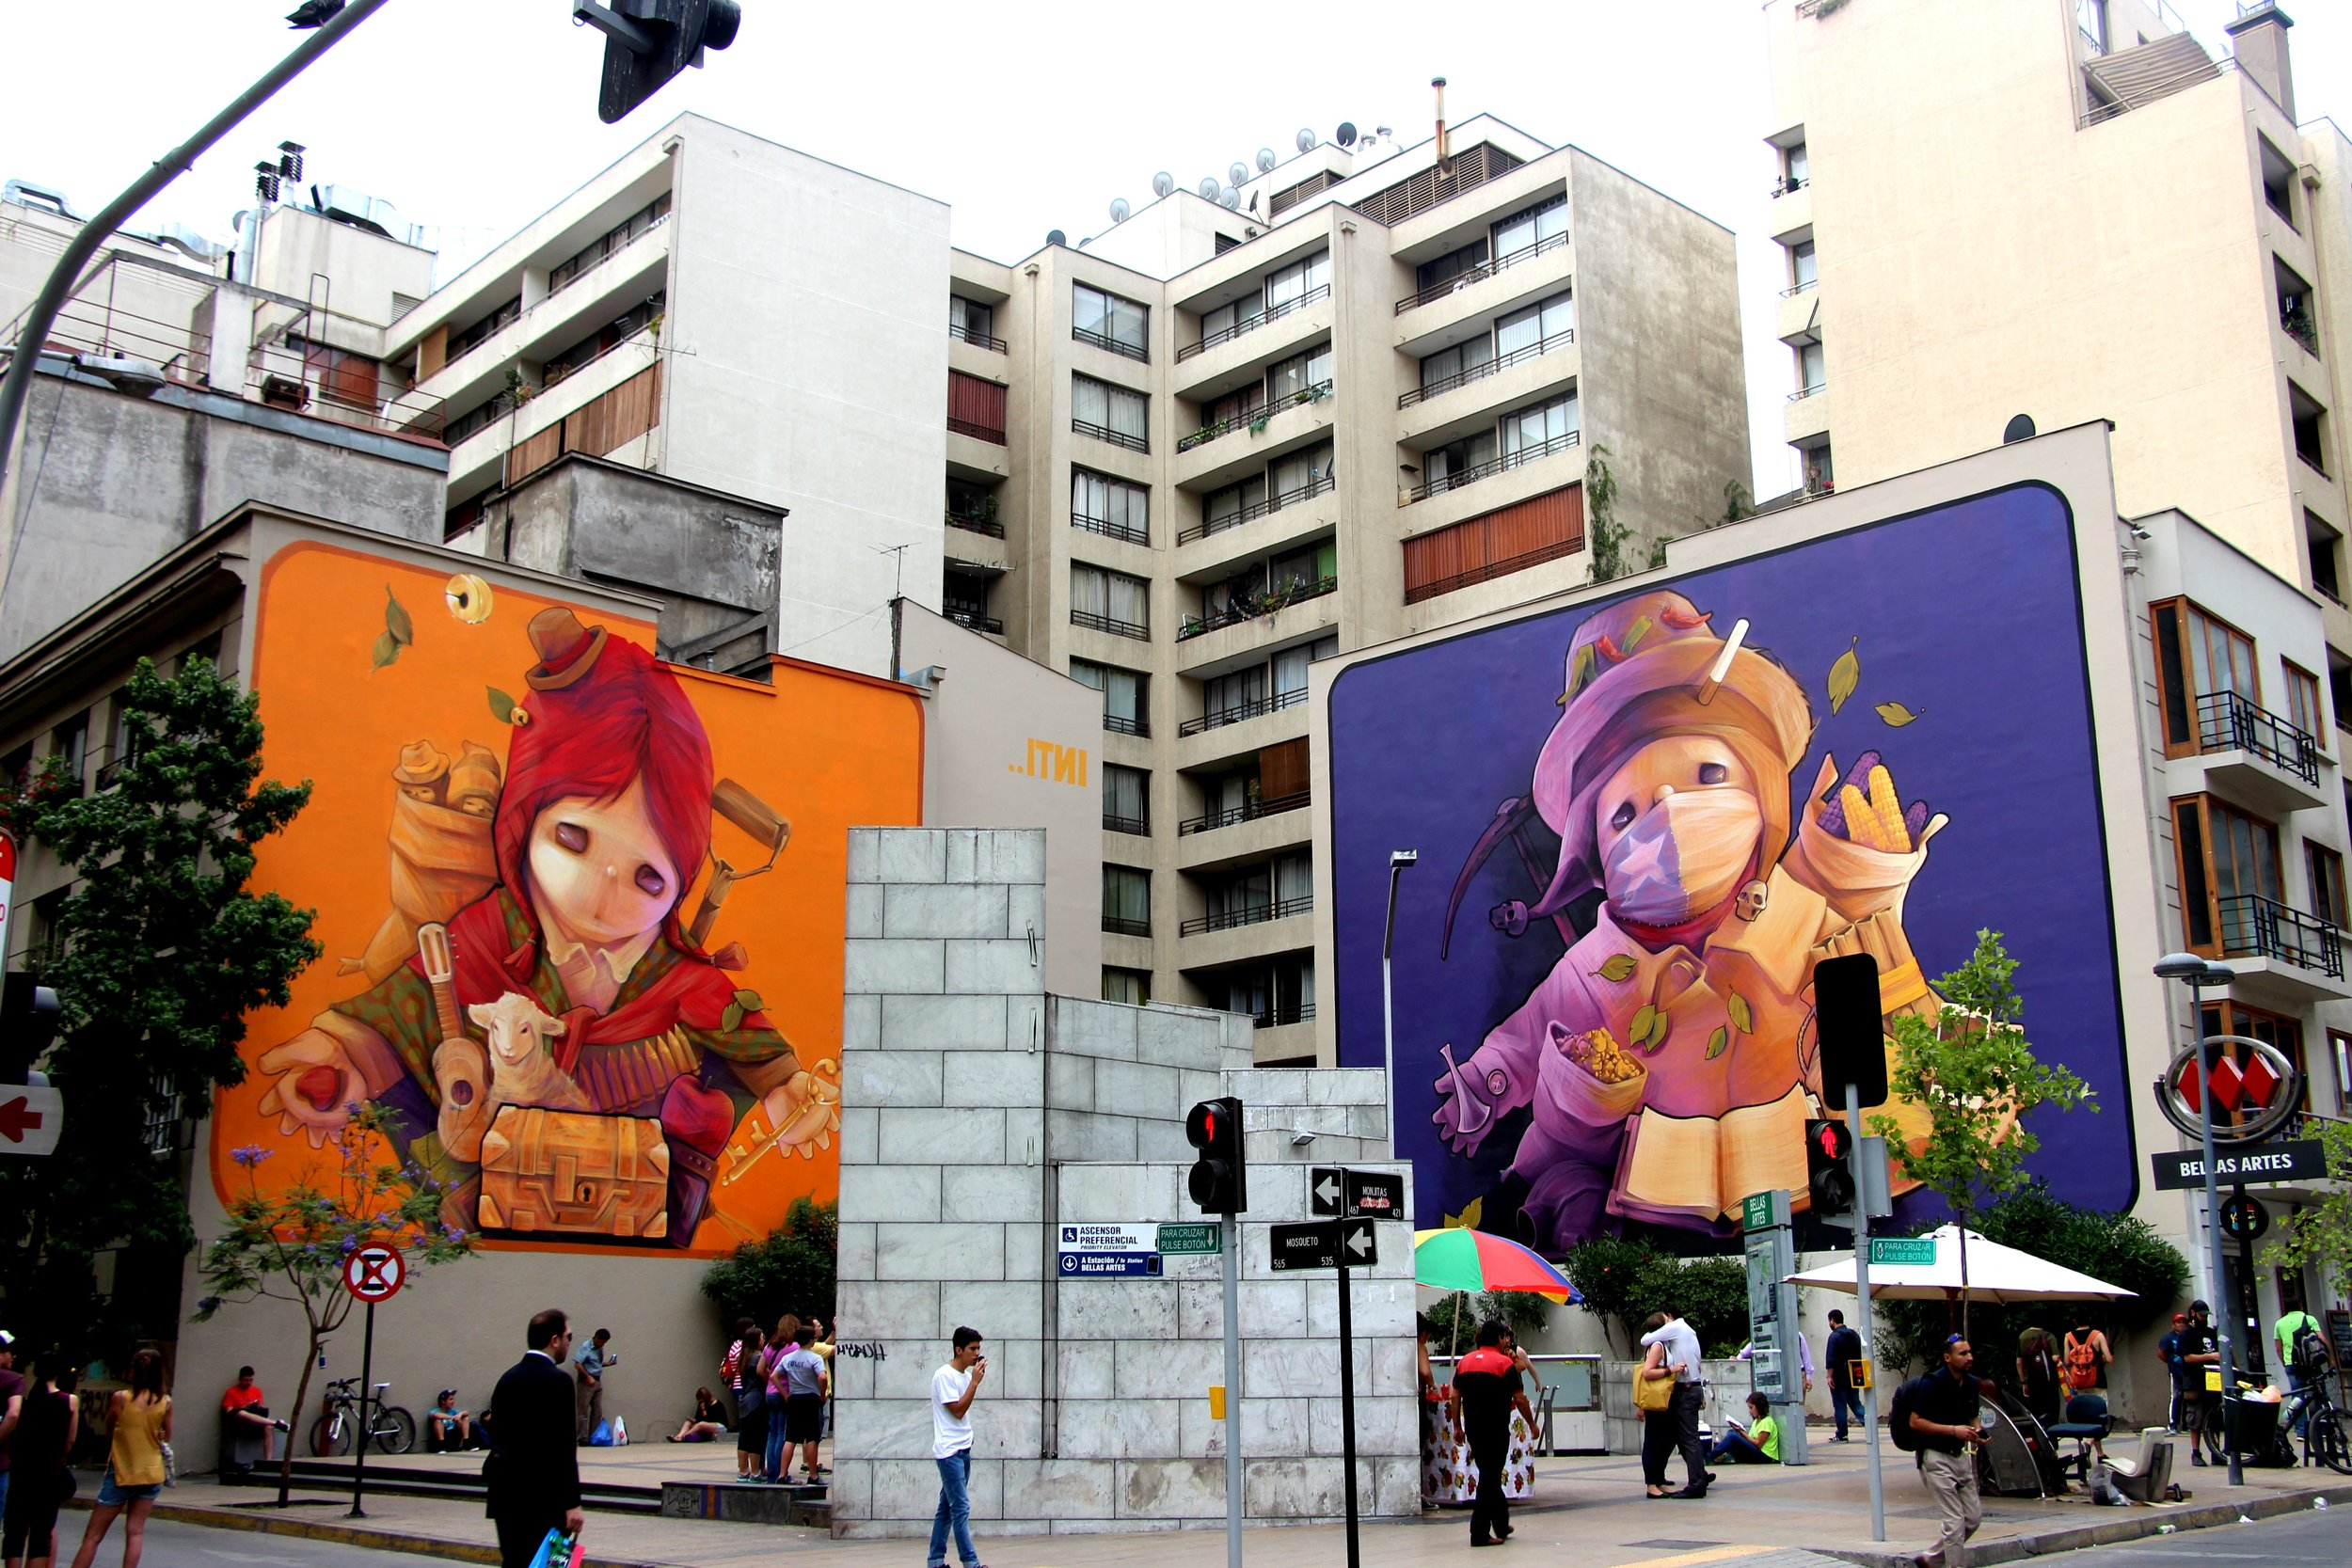 Santiago has some incredible murals of their own!